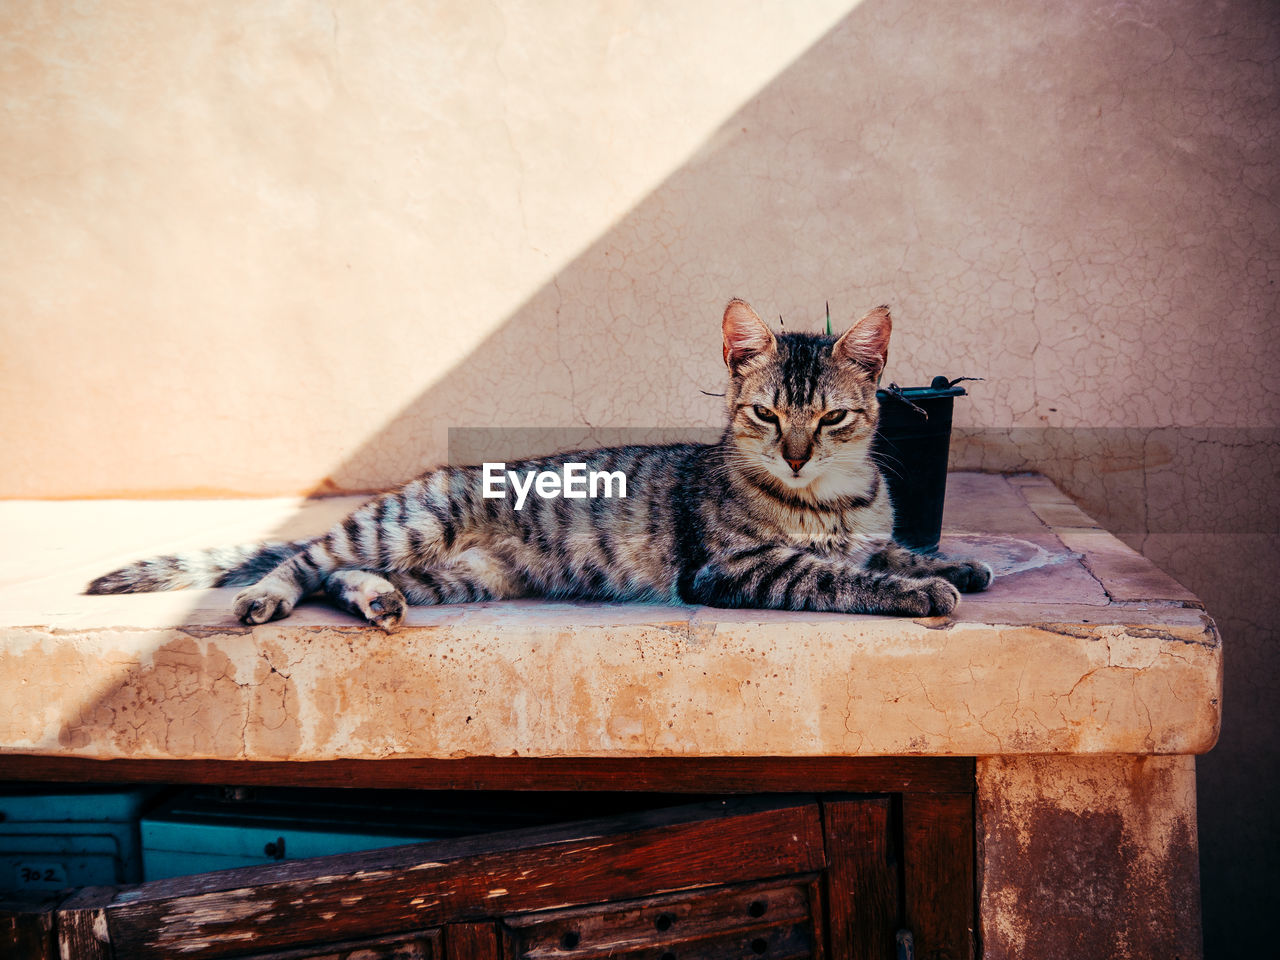 cat, feline, domestic cat, pets, domestic animals, relaxation, domestic, mammal, animal, animal themes, one animal, vertebrate, wood - material, resting, no people, sitting, wall - building feature, table, day, looking away, whisker, tabby